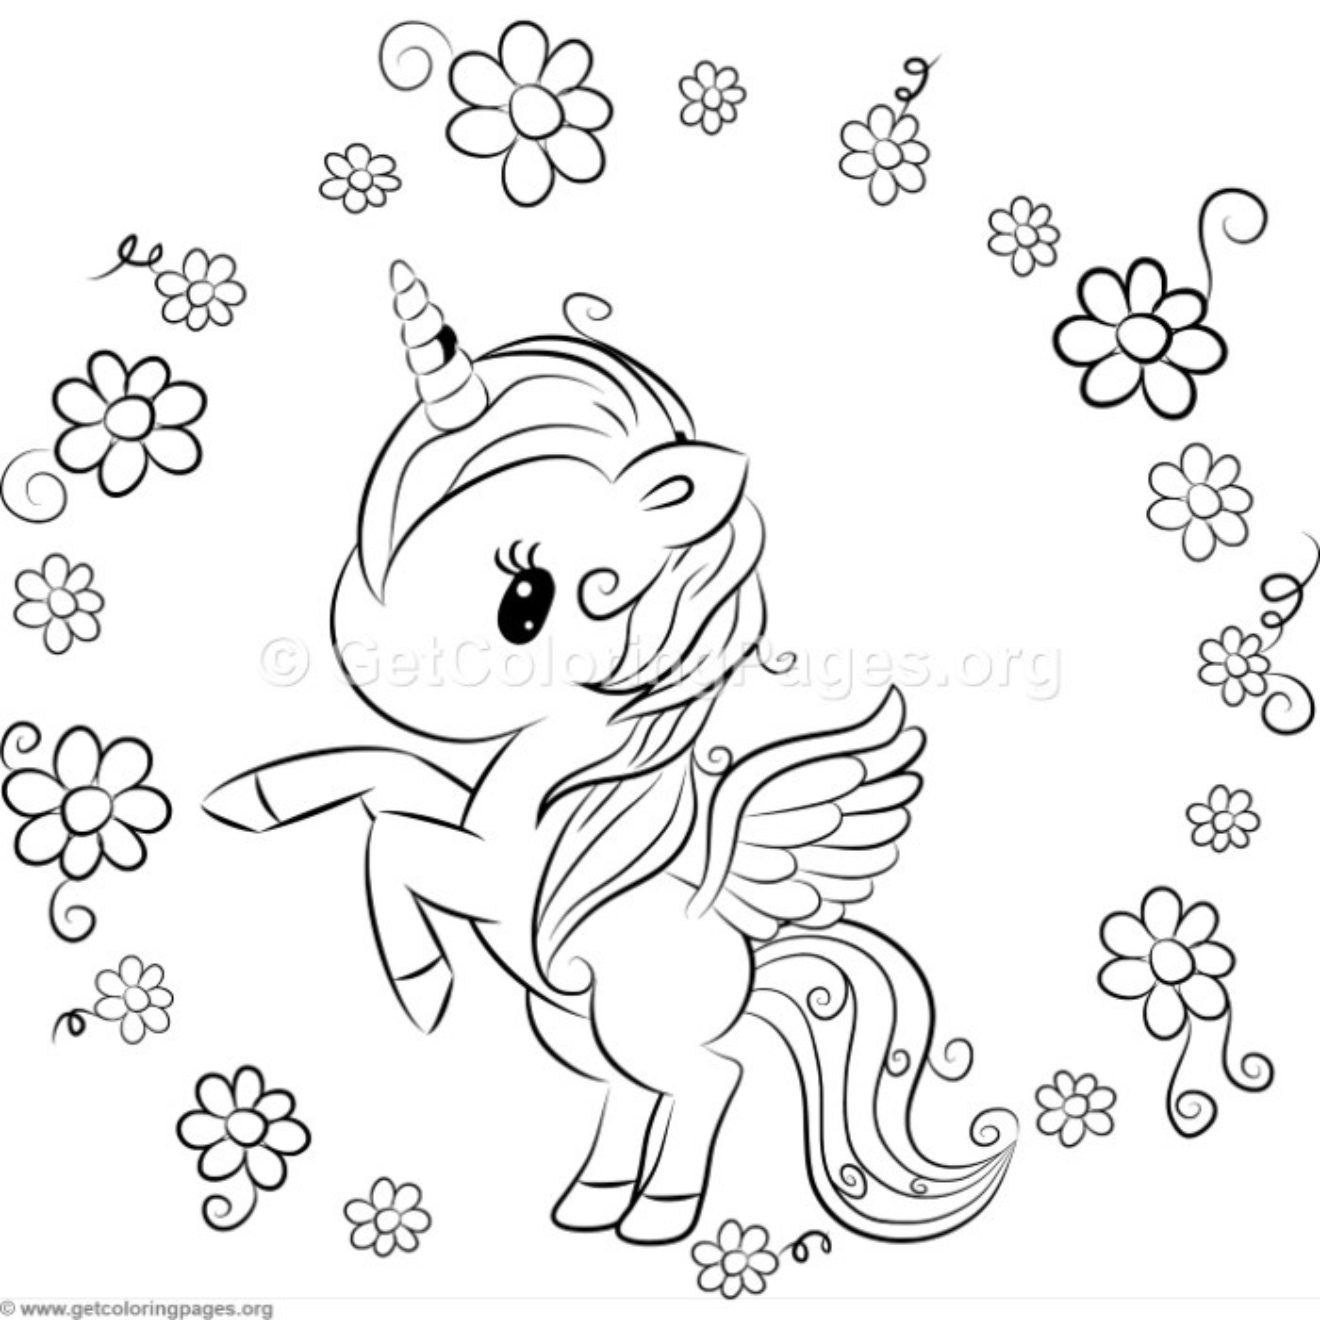 Cute Unicorn 9 Coloring Pages Getcoloringpages